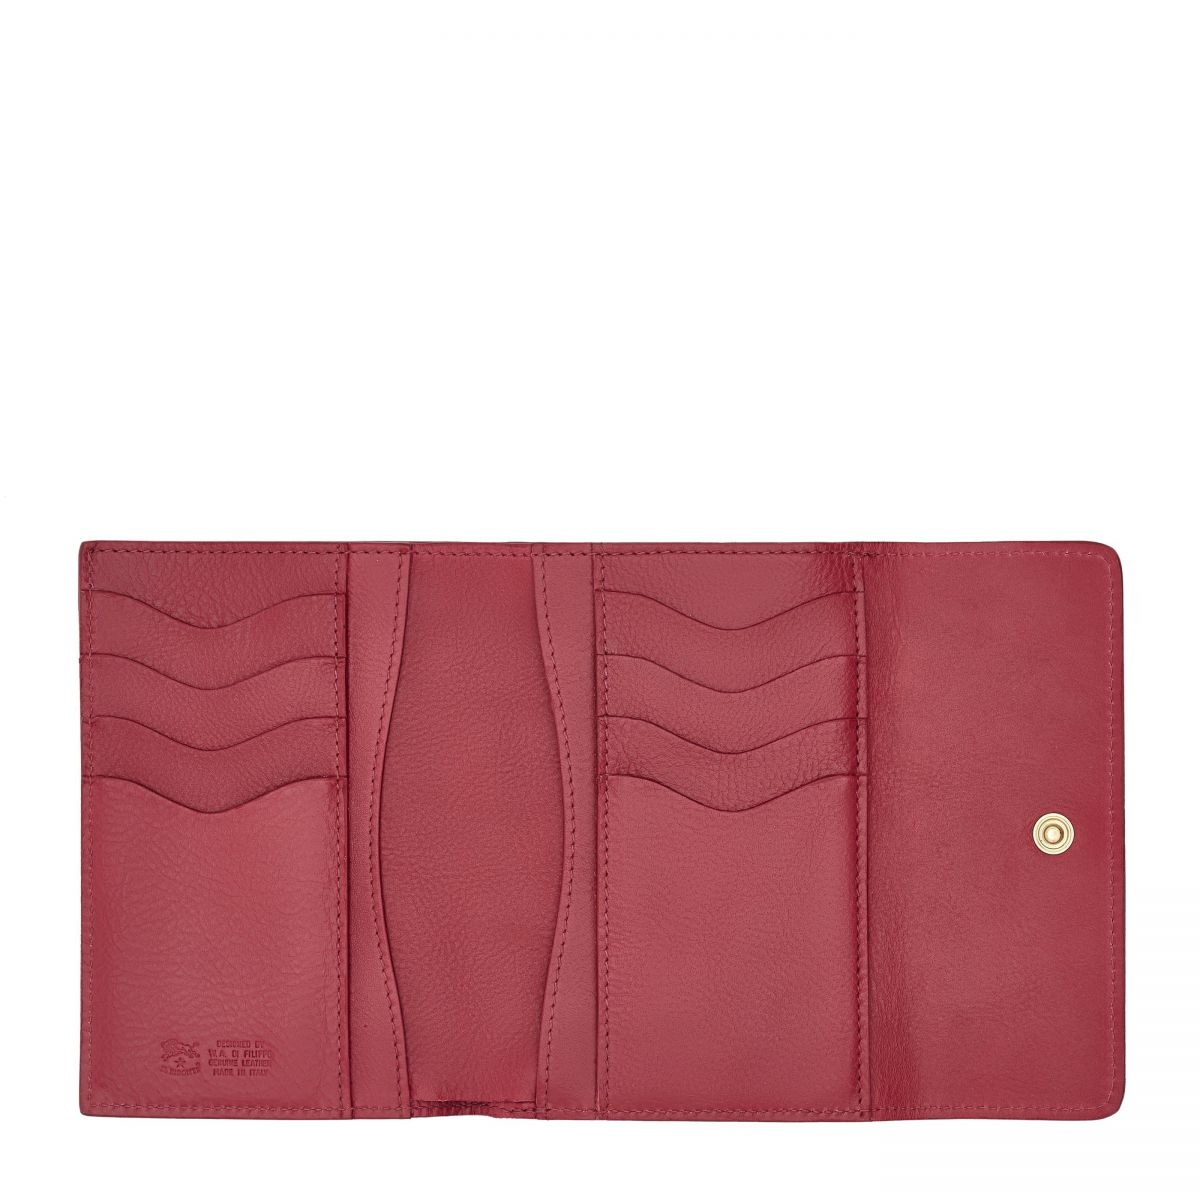 Wallet  in Cowhide Leather SMW040 color Sumac | Details